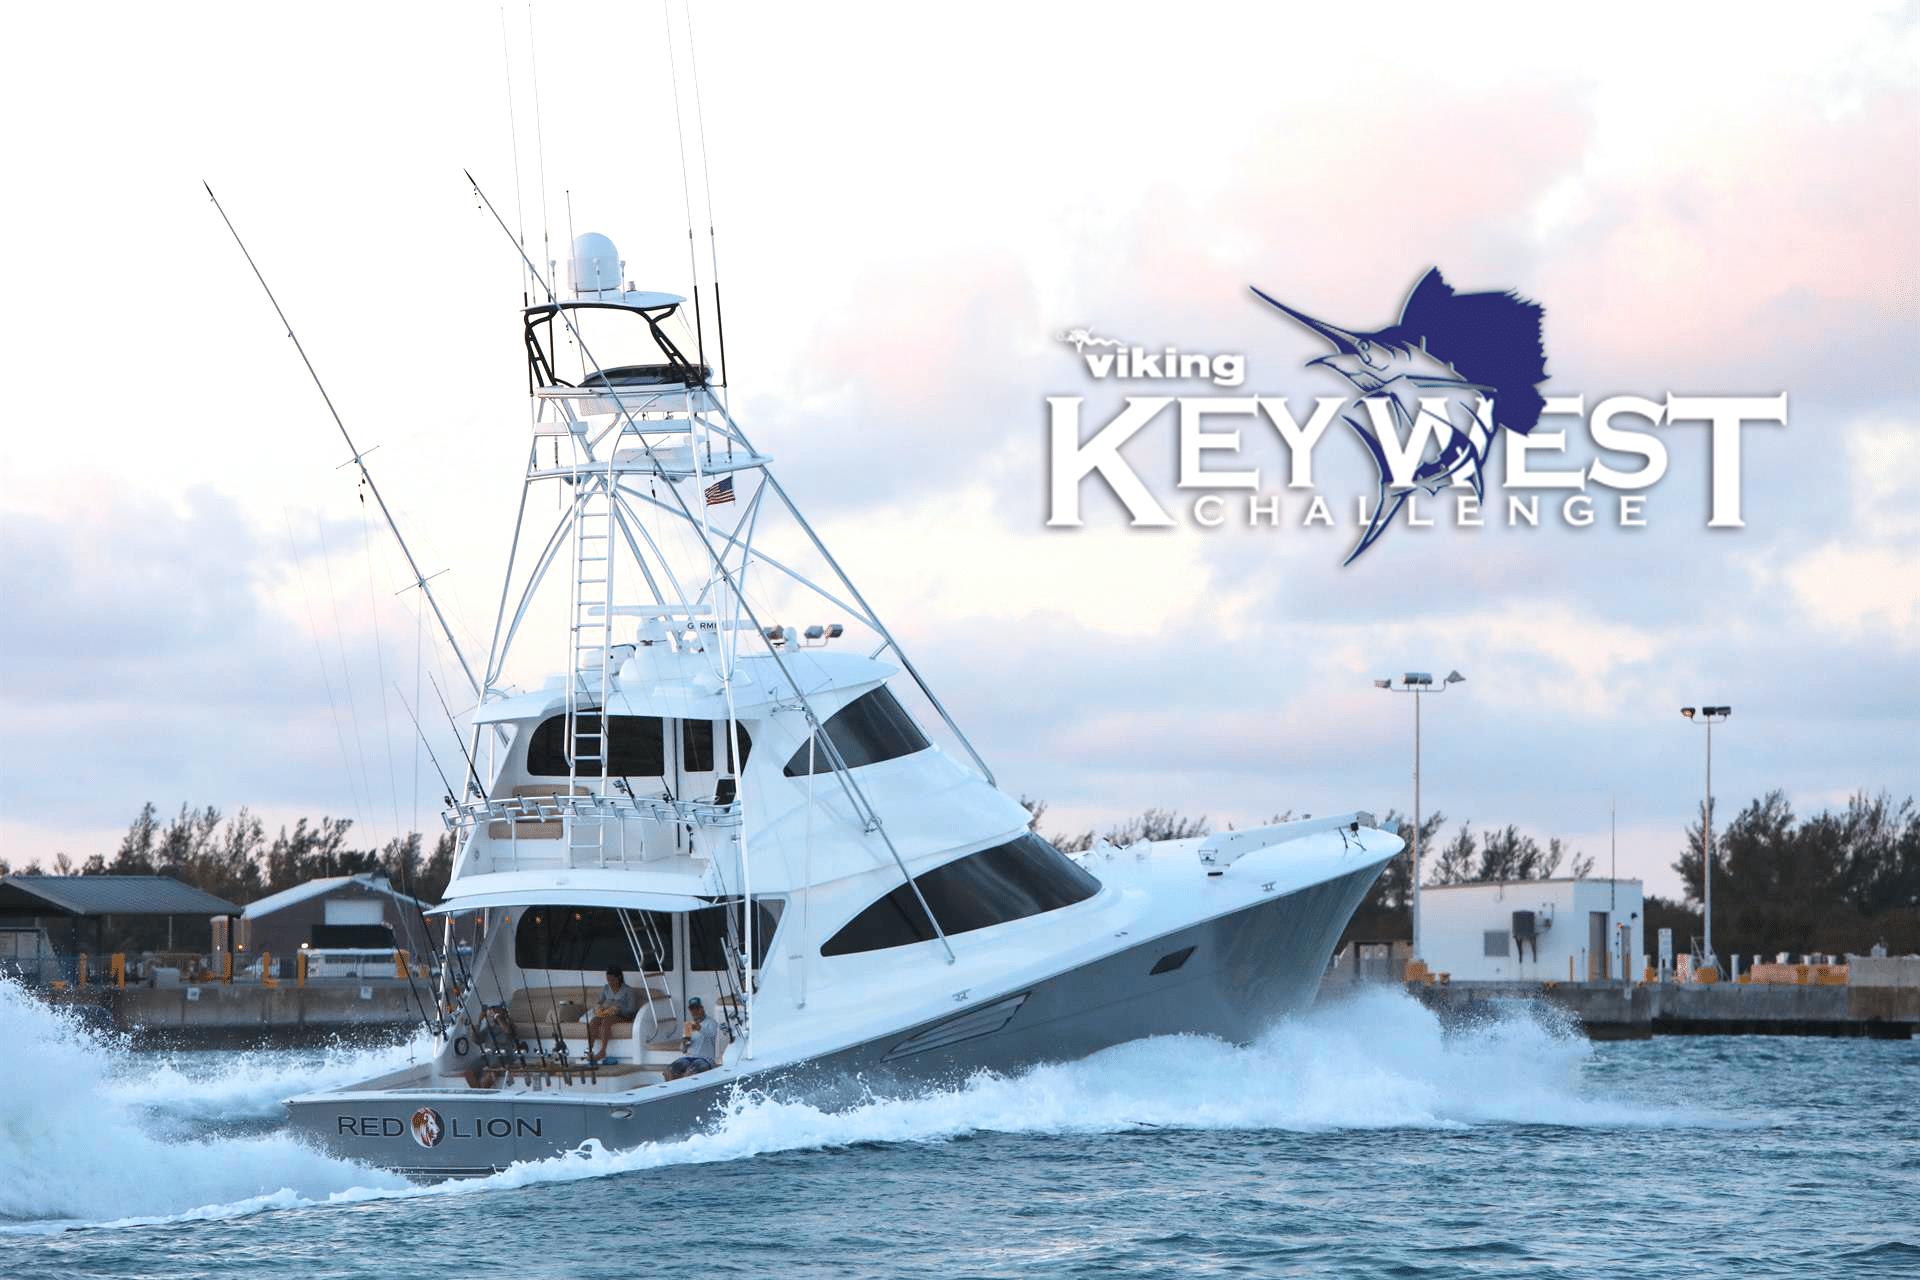 Viking Key West Challenge 2019